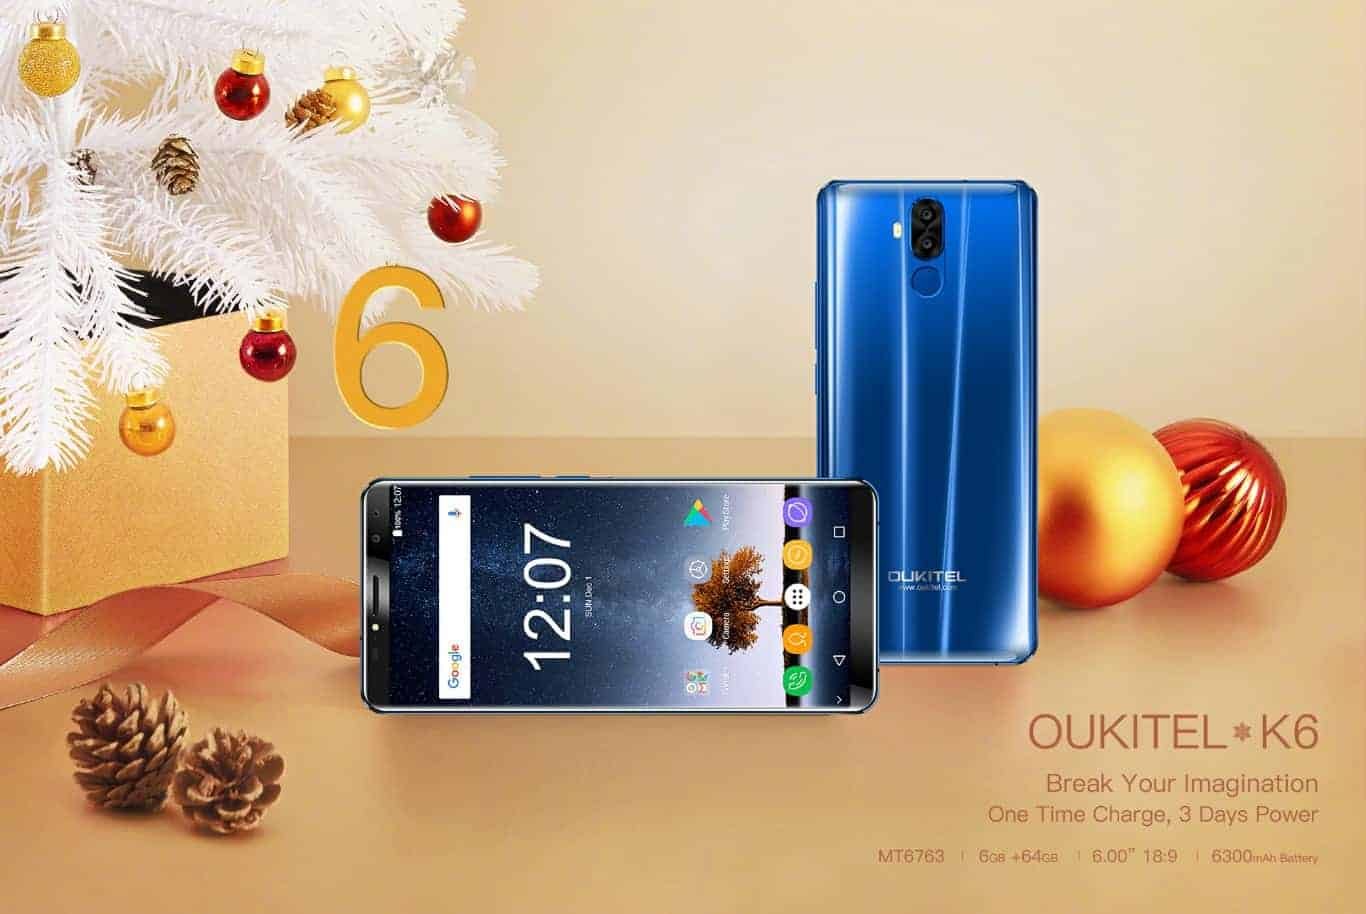 OUKITEL K6 official image 21